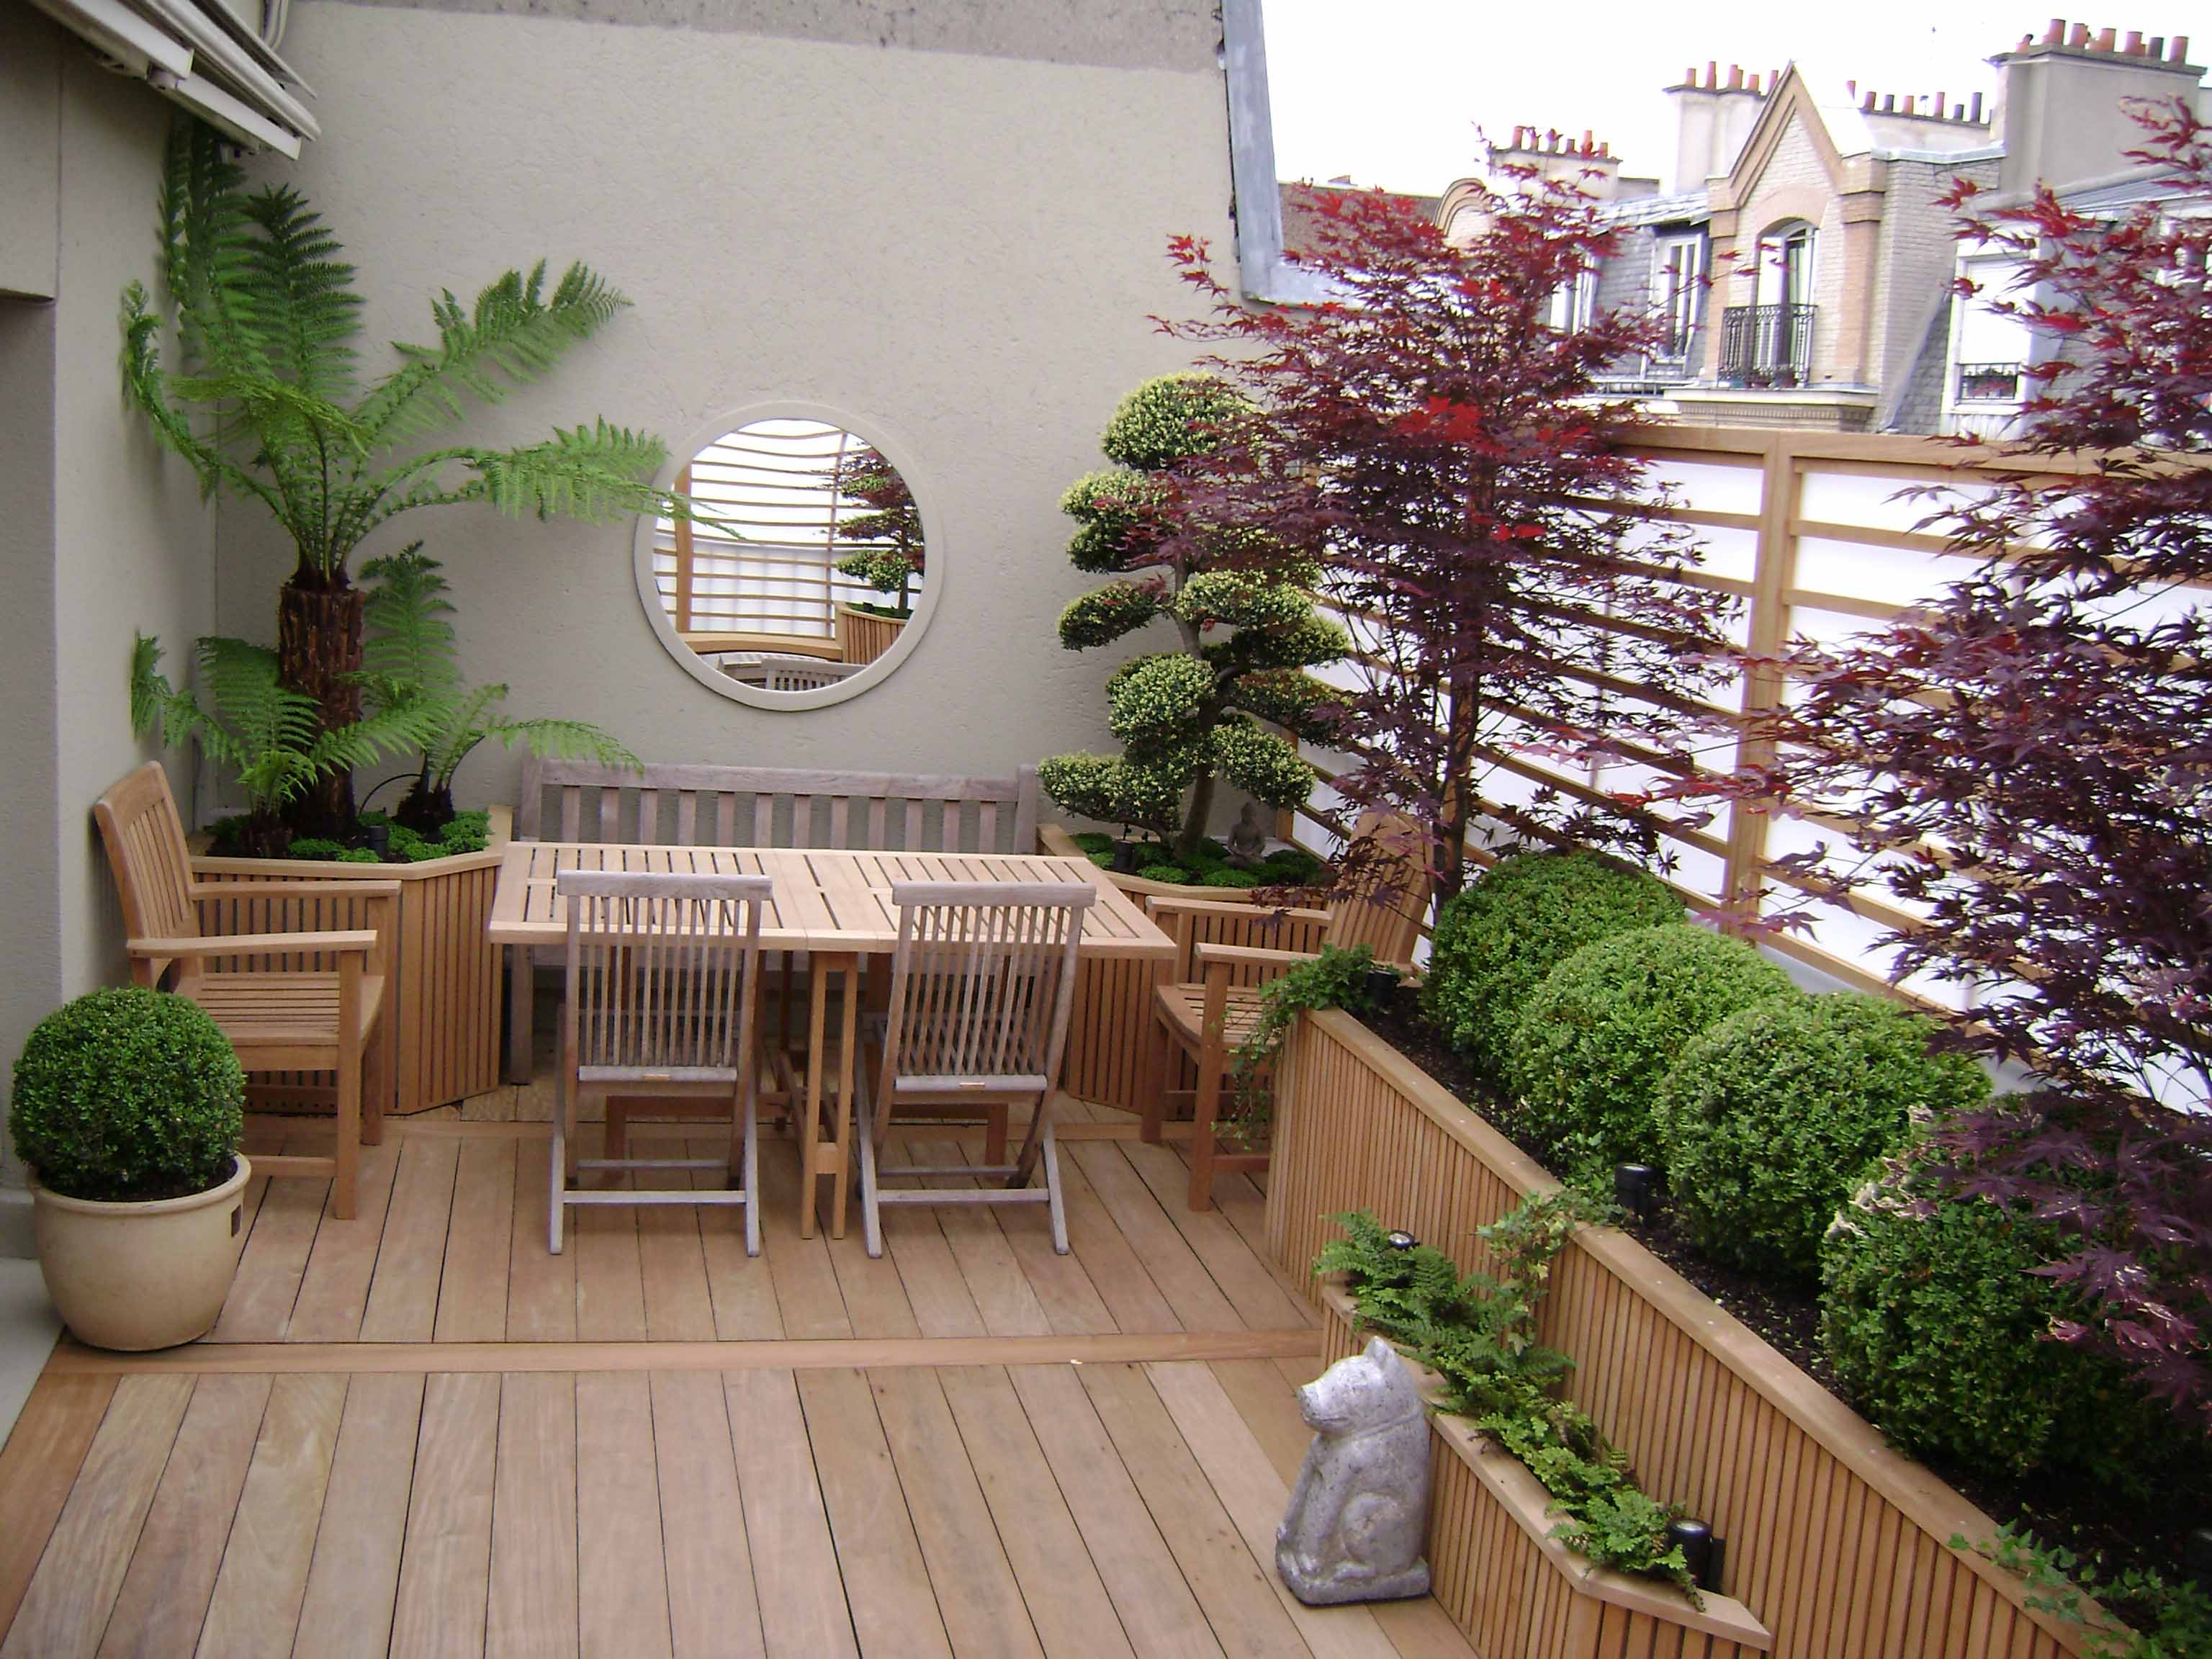 Deco Terrasse Design Of D Coration Sur Terrasse